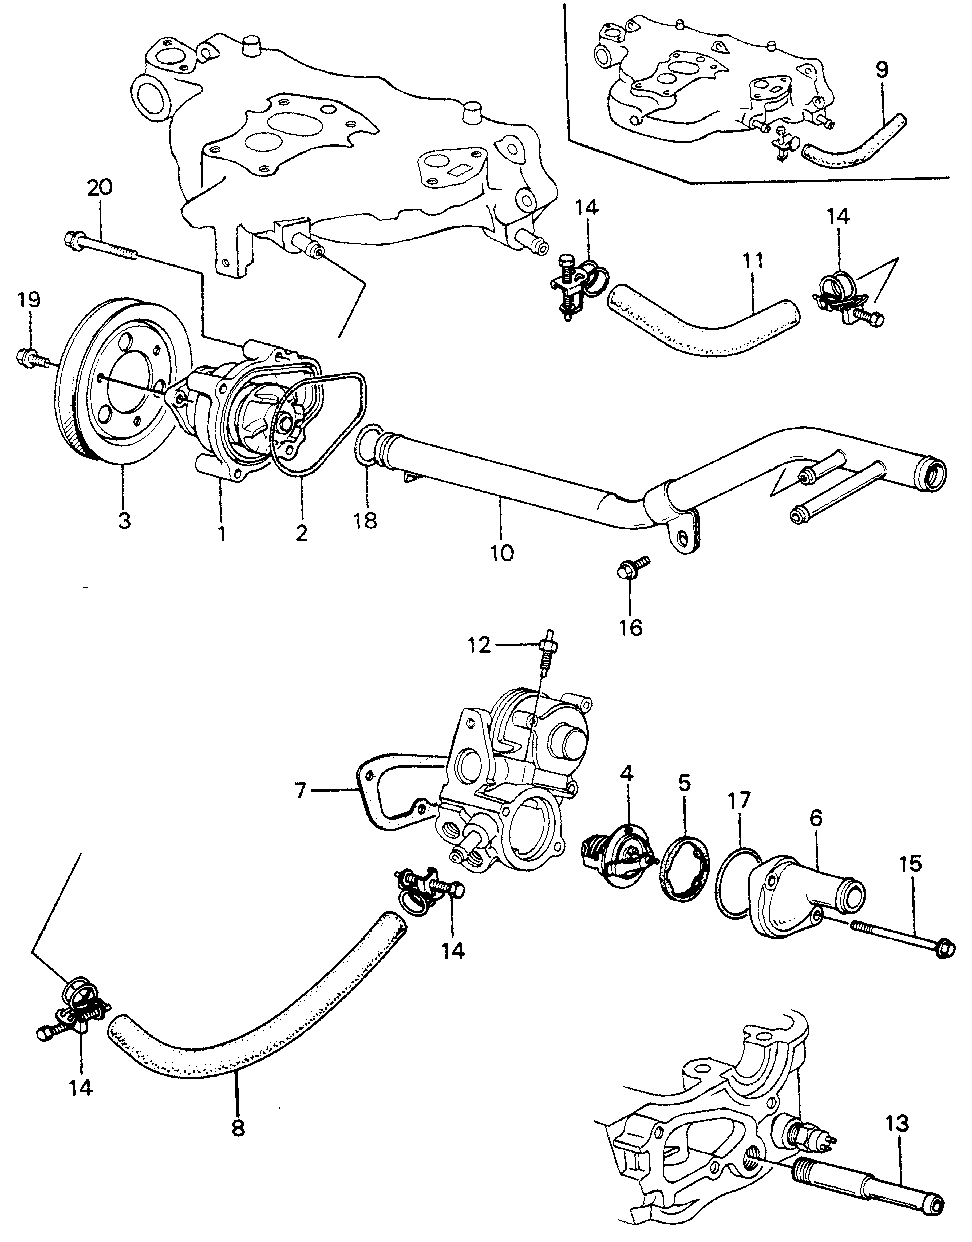 19224-PC1-000 - PULLEY, WATER PUMP